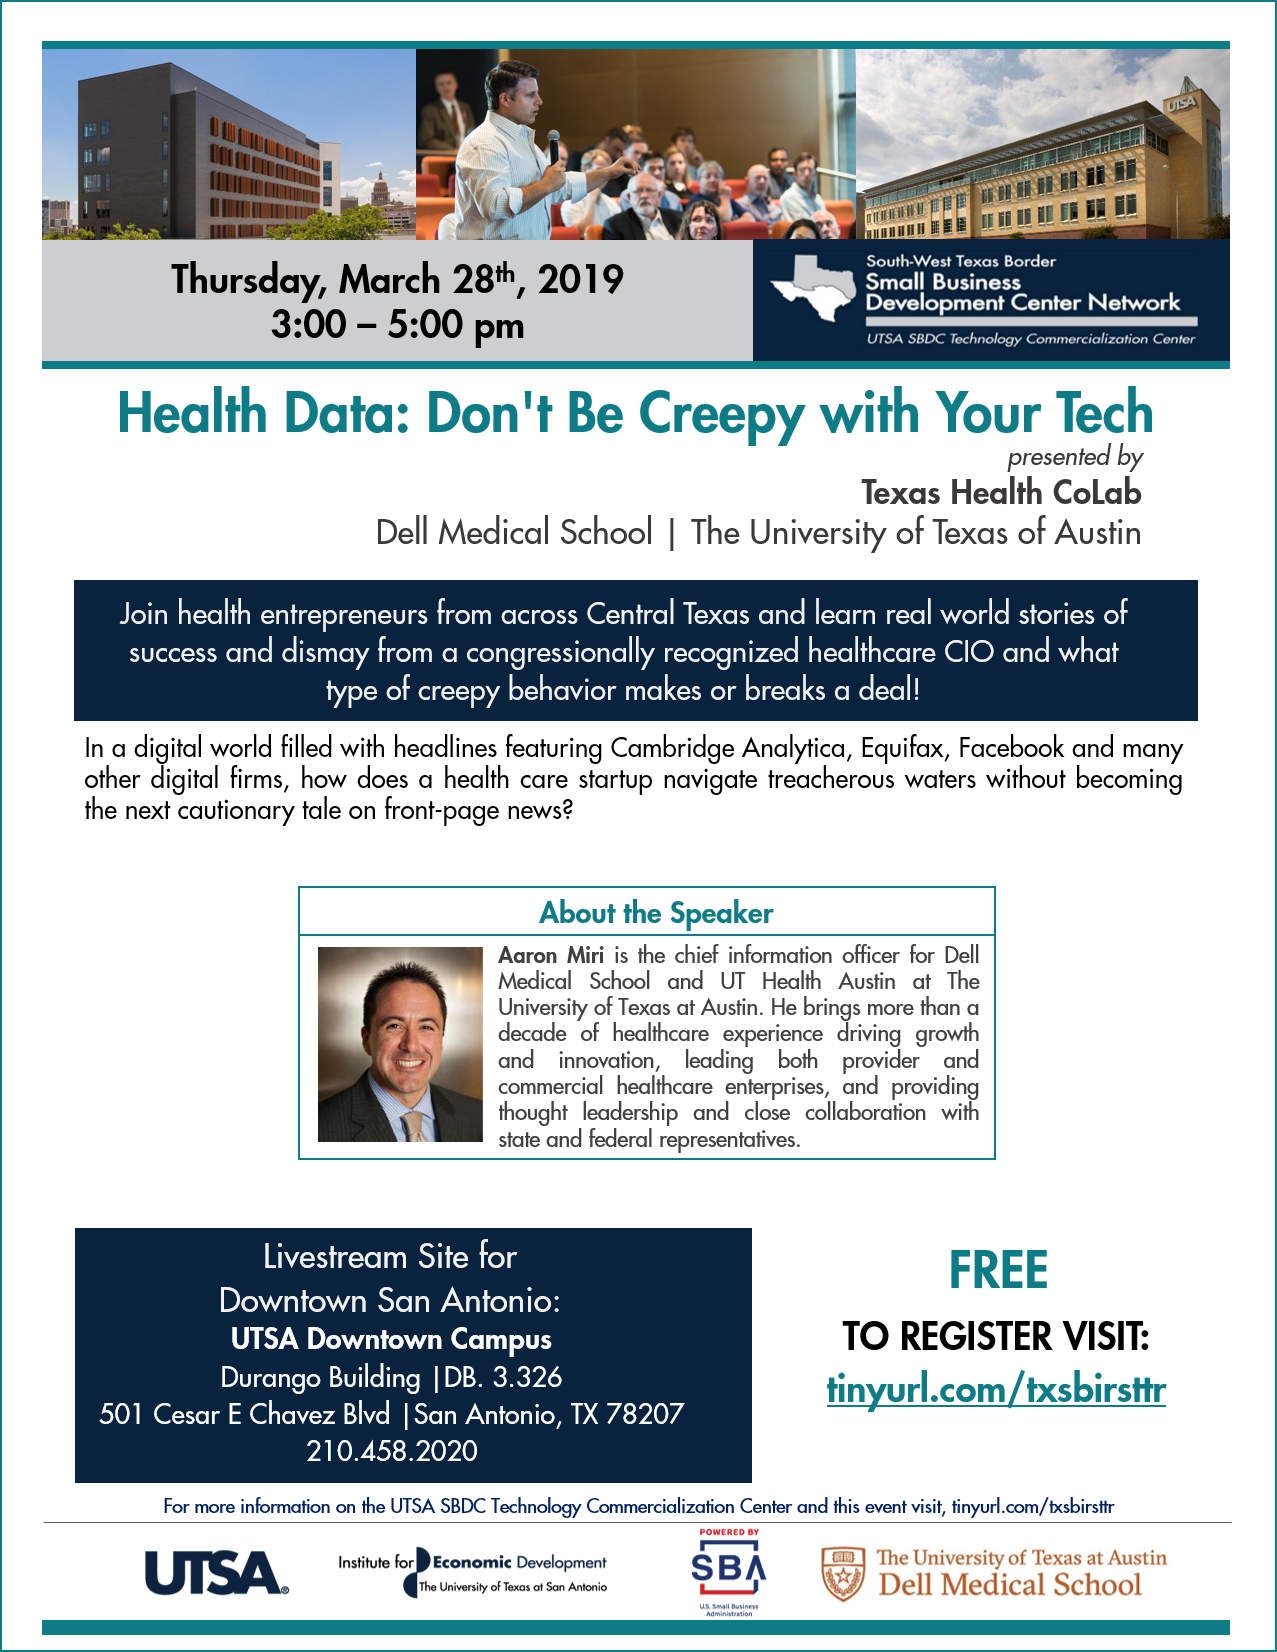 dell texas health colab March 2019 webinar flyer